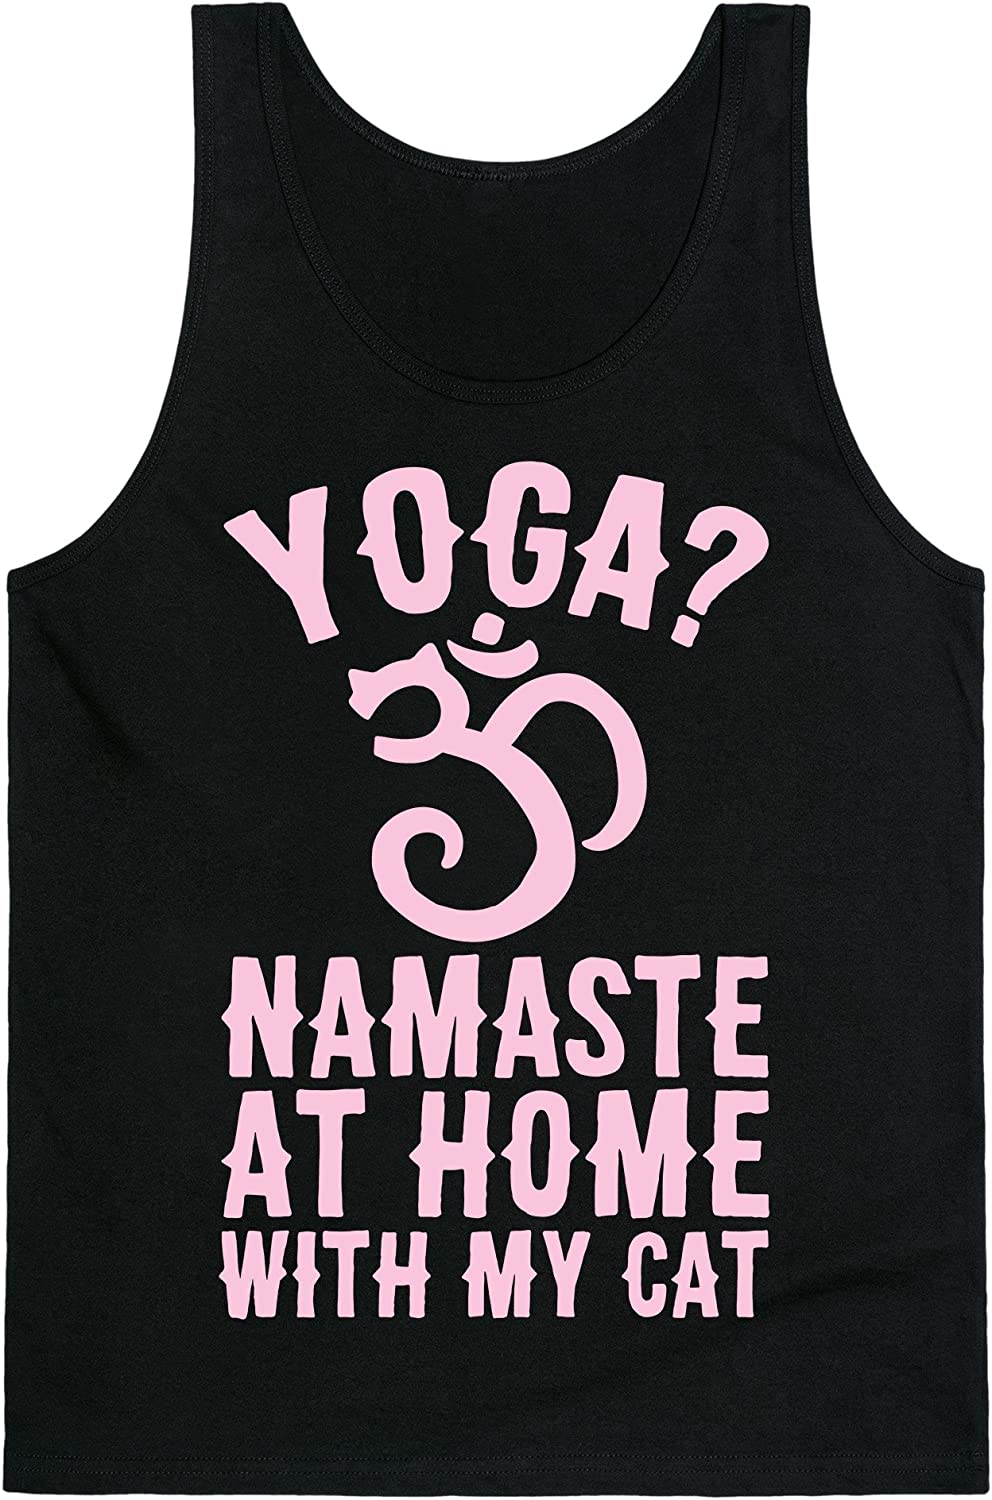 LookHUMAN Namaste at Home with My Cat Mens/Unisex Tank